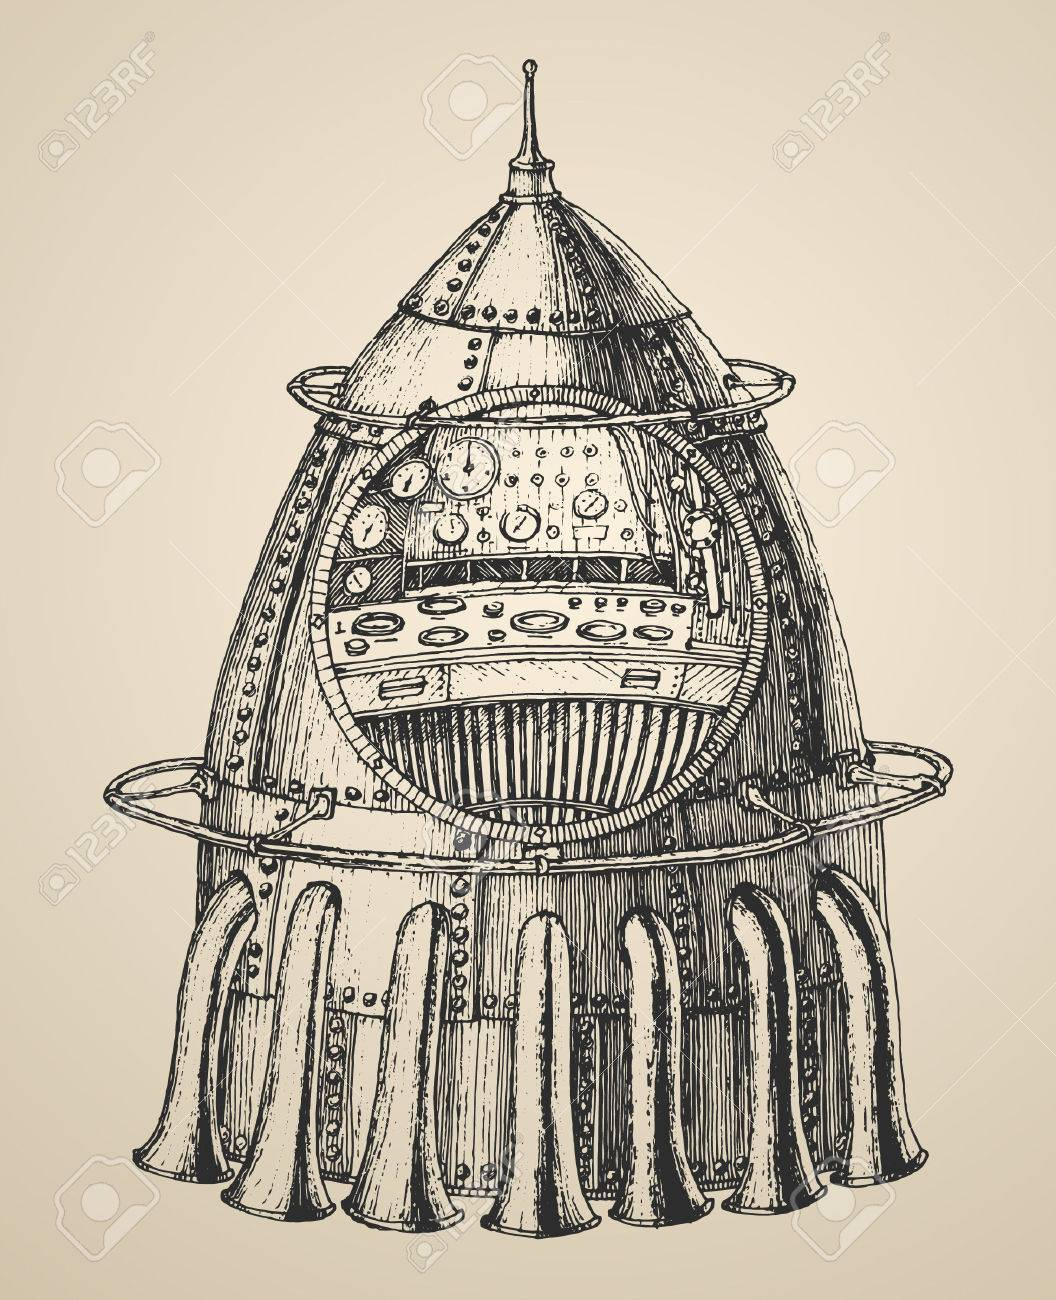 1056x1300 Spaceship Illustration Of A Steam Punk Rocket Ship In A Vintage